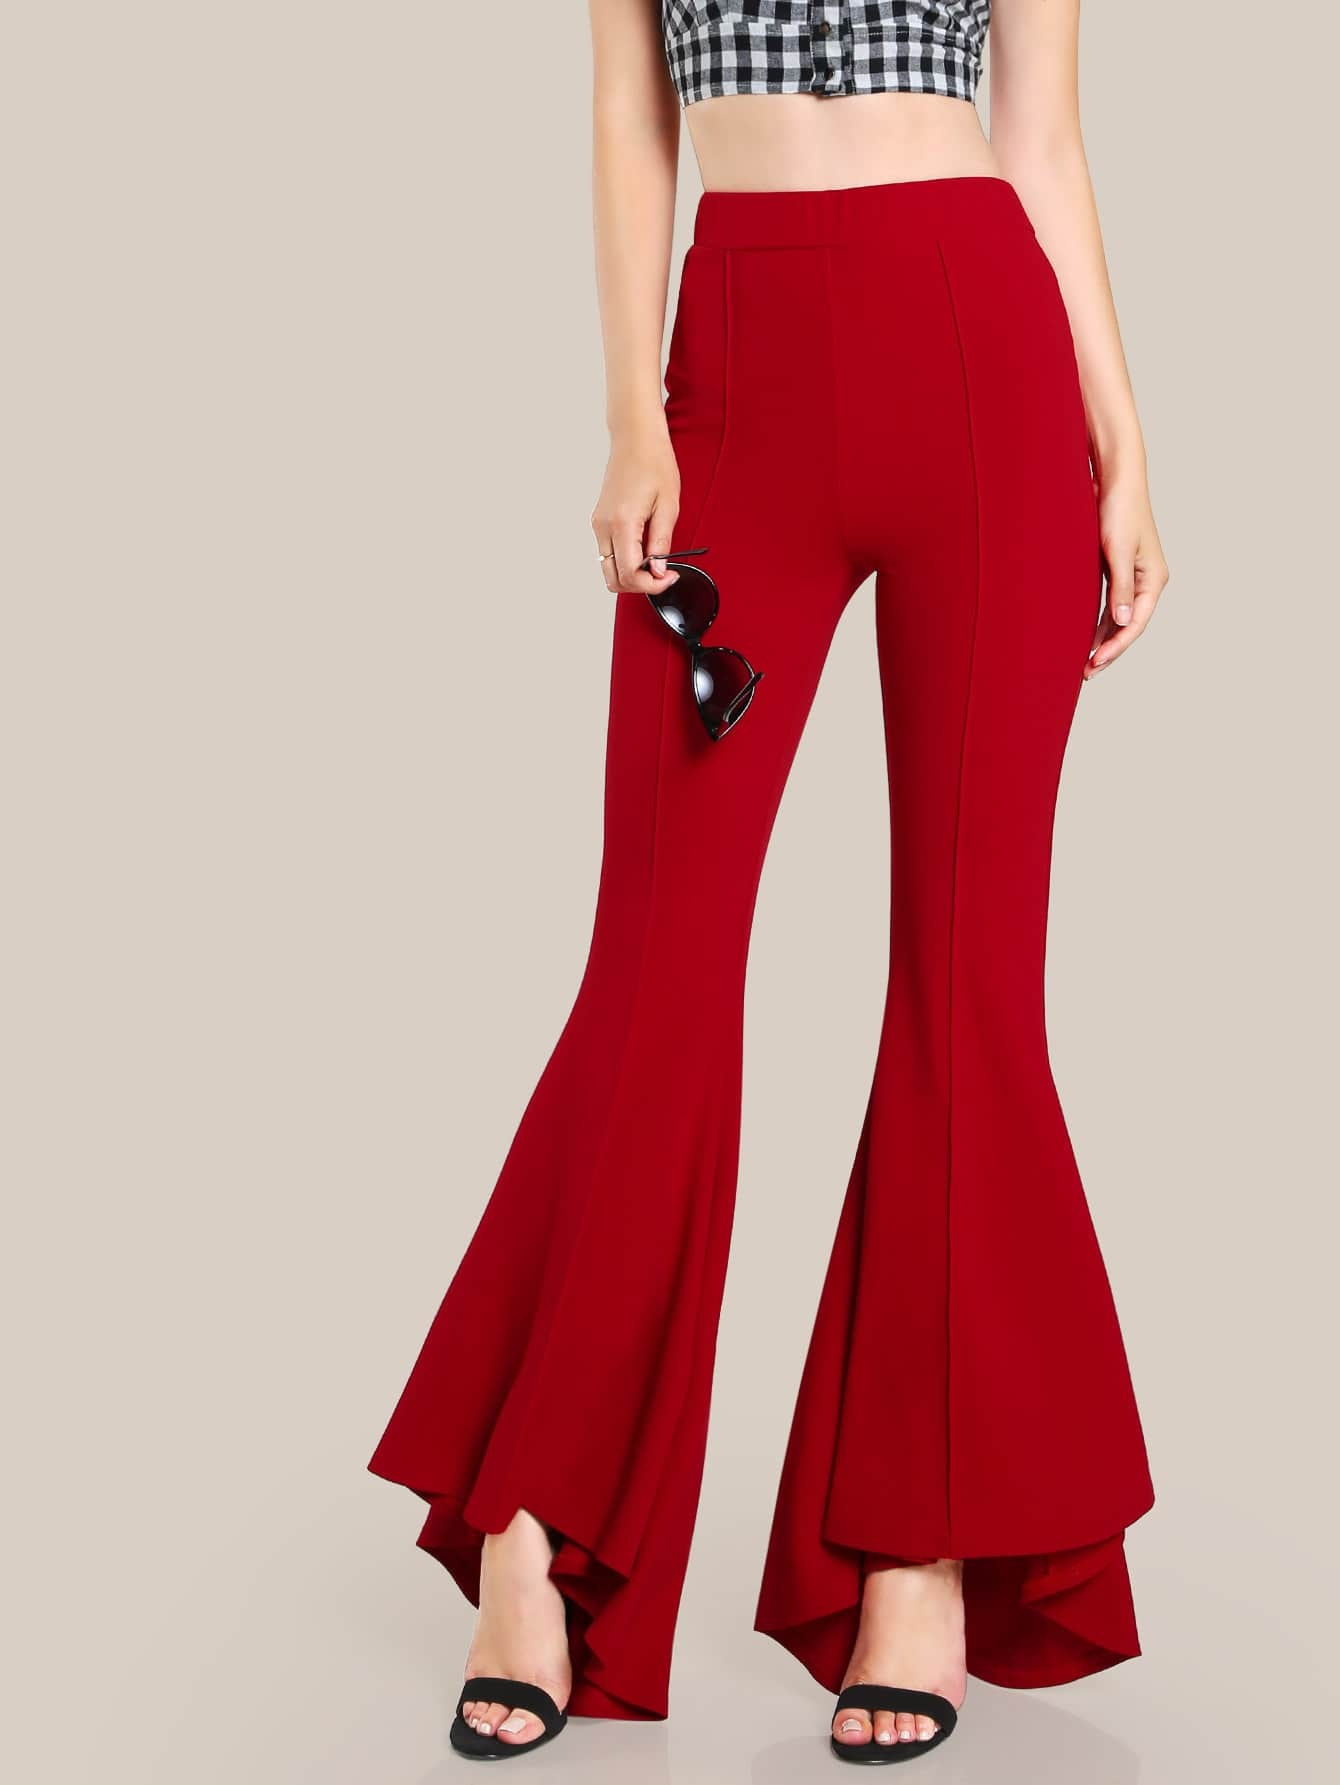 Flare Pants. Bring a little personality to any casual, semi-formal or professional business wardrobe by adding a pair of flare pants to any women's fashion collection.